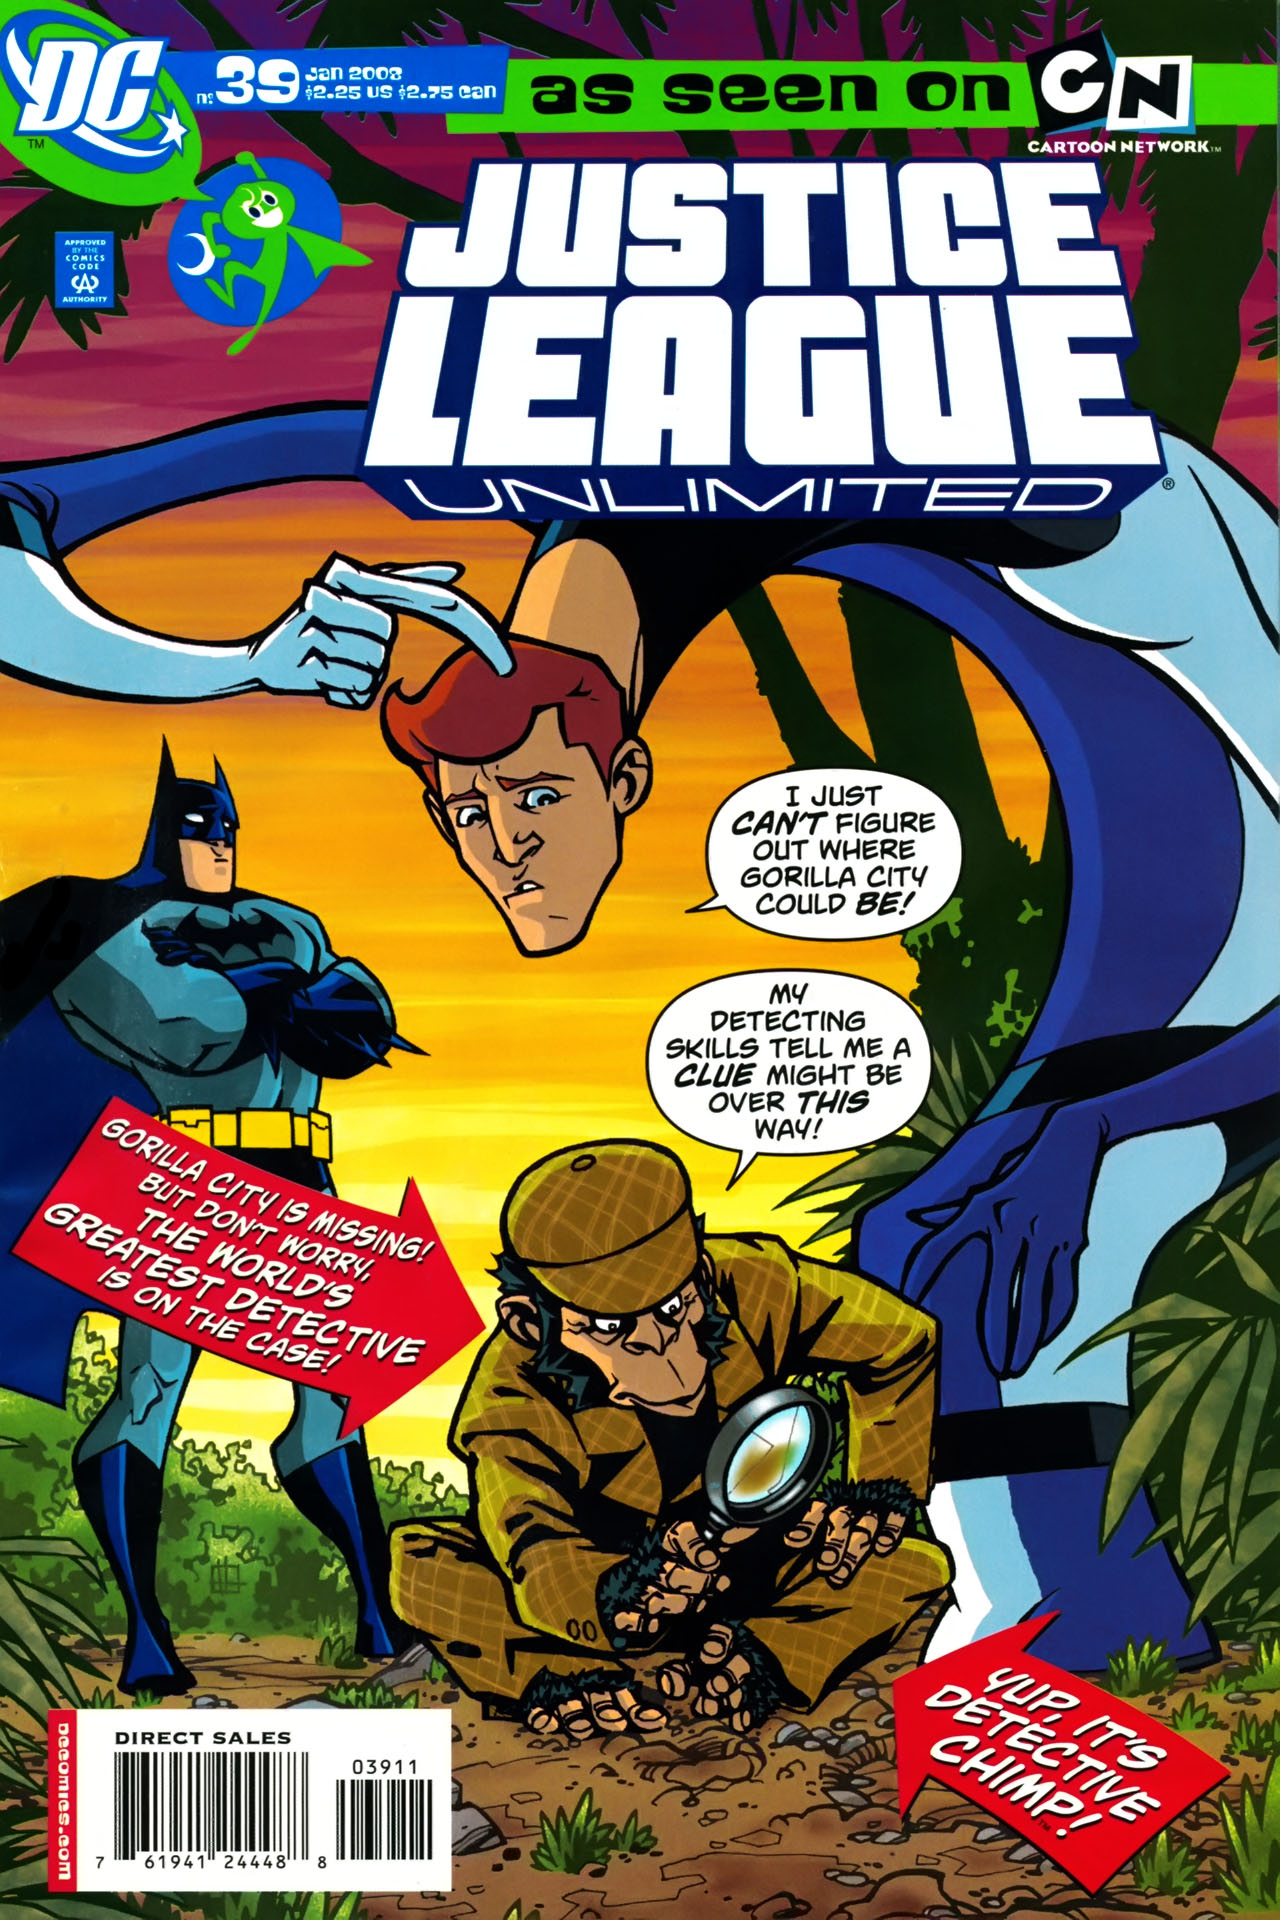 Justice League Unlimited 39 Page 1